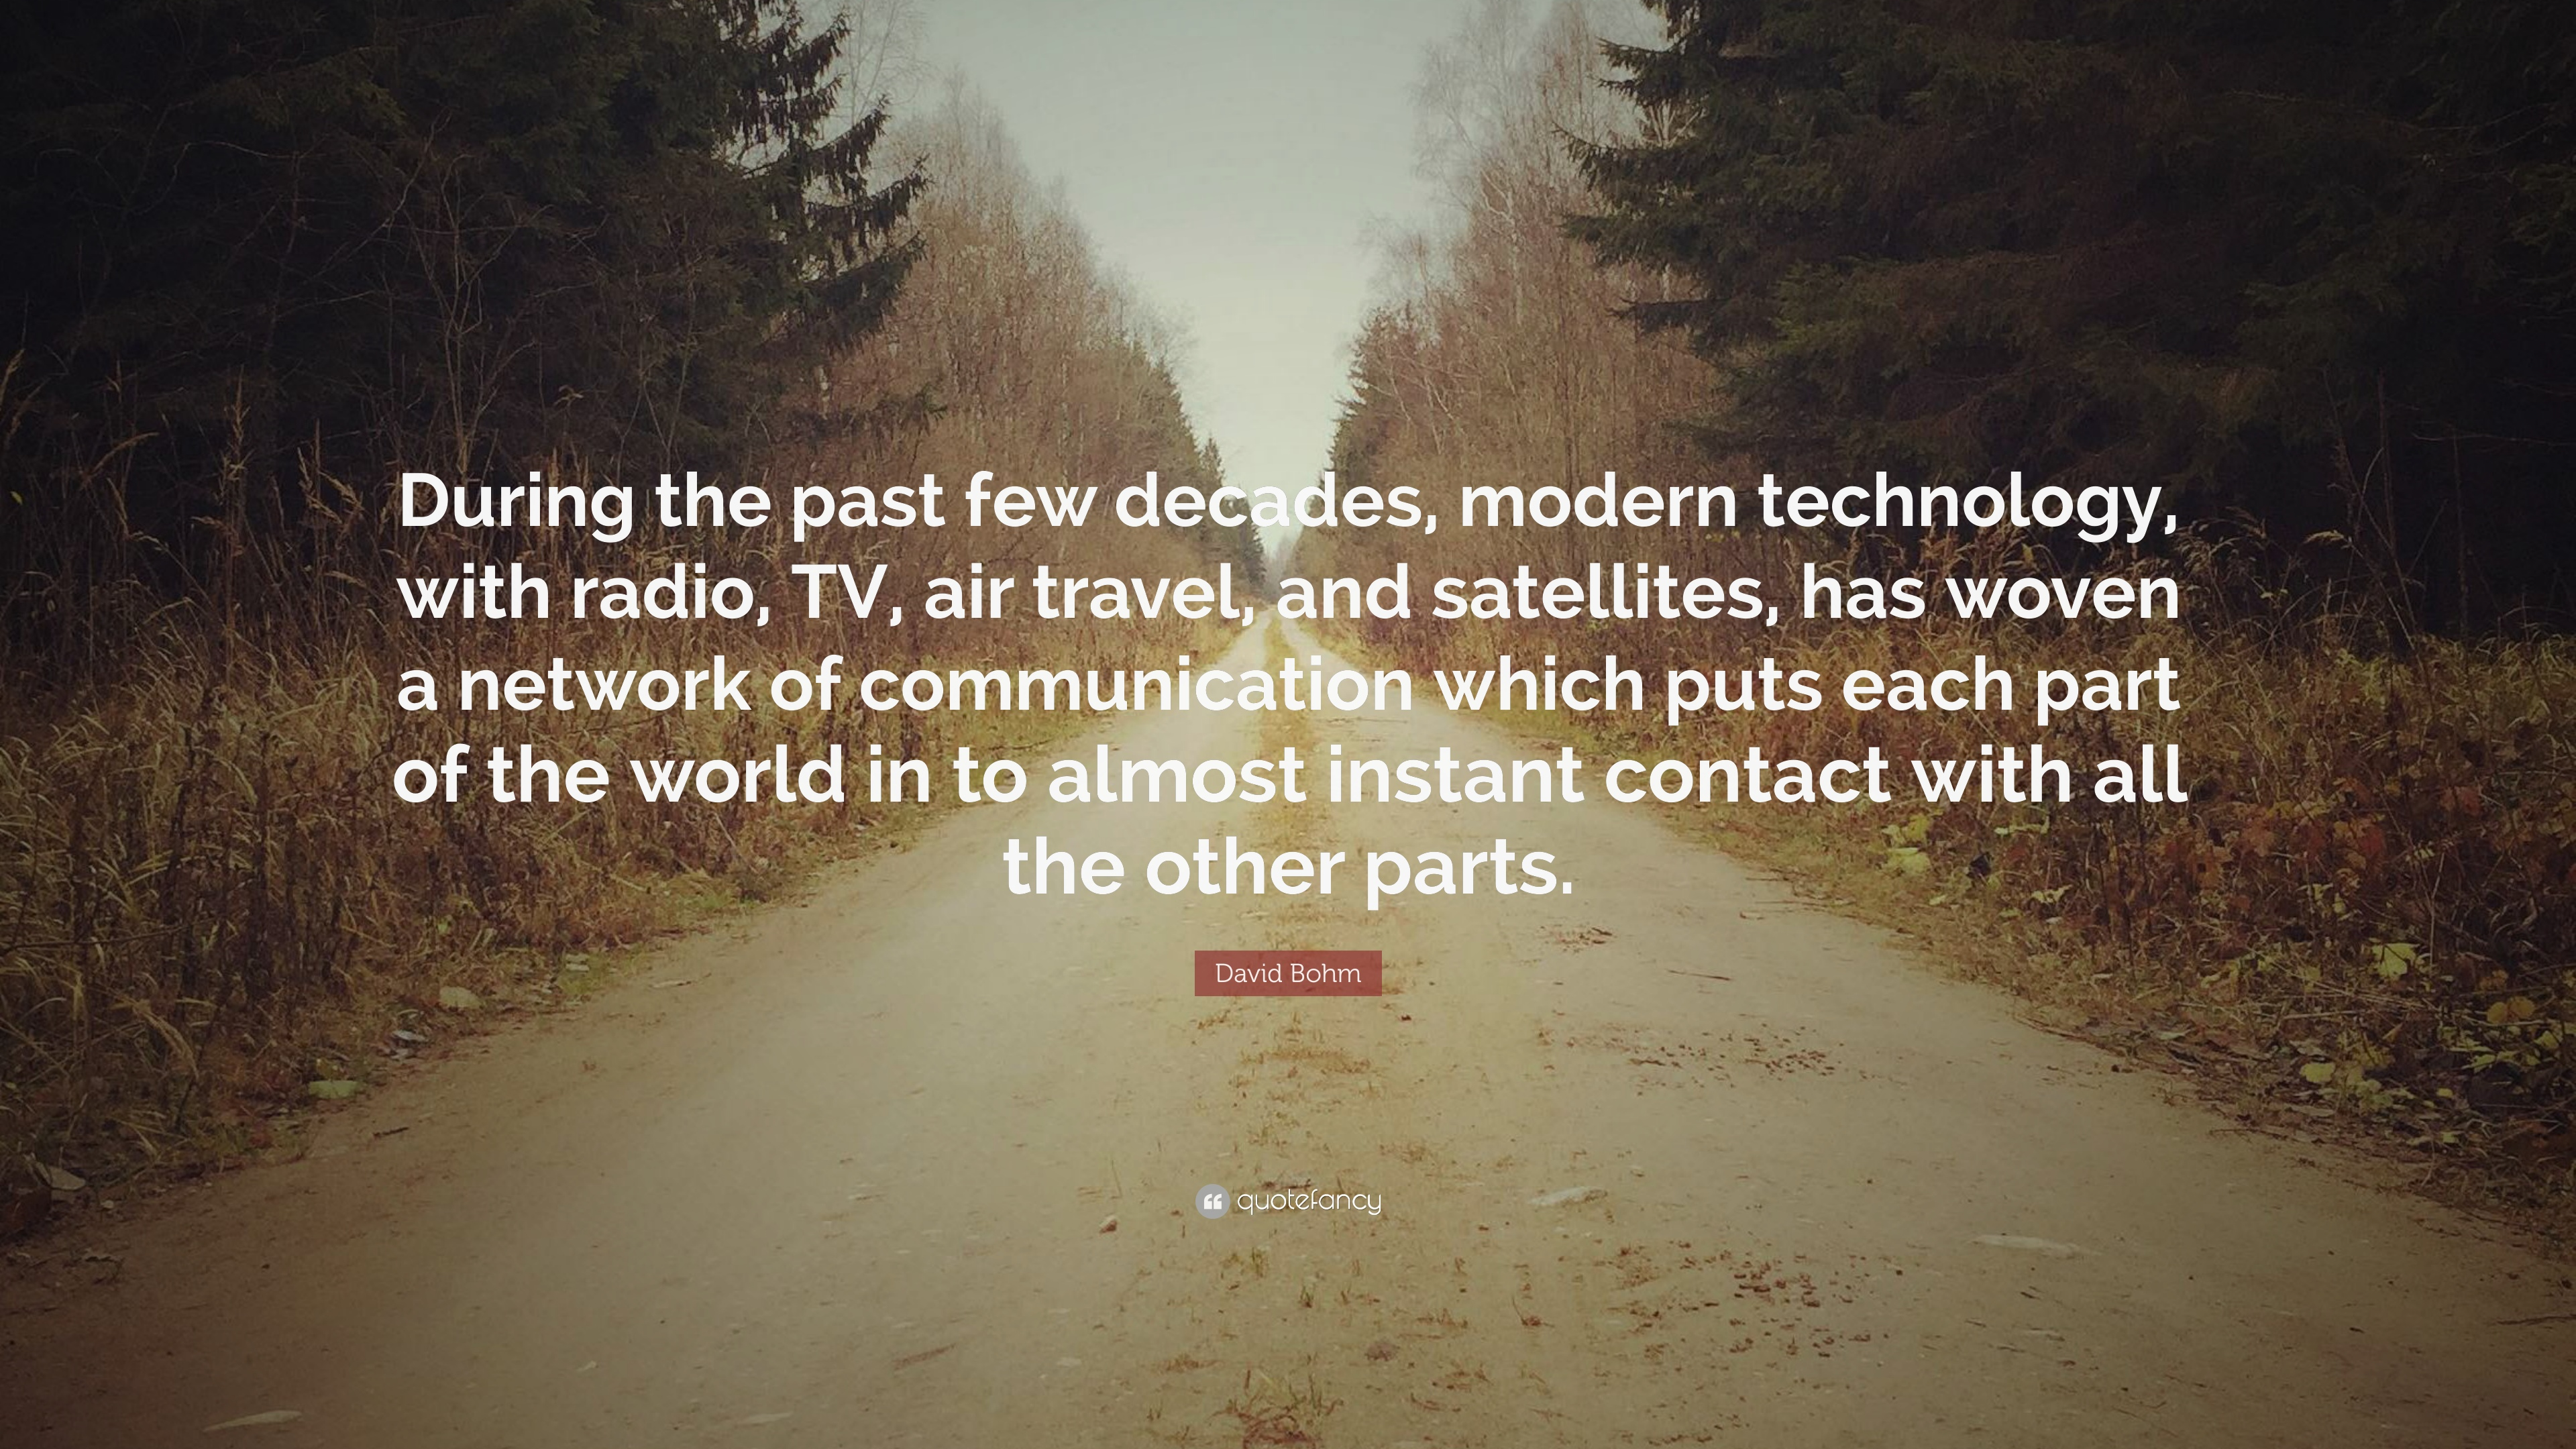 david bohm quote during the past few decades modern technology david bohm quote during the past few decades modern technology radio